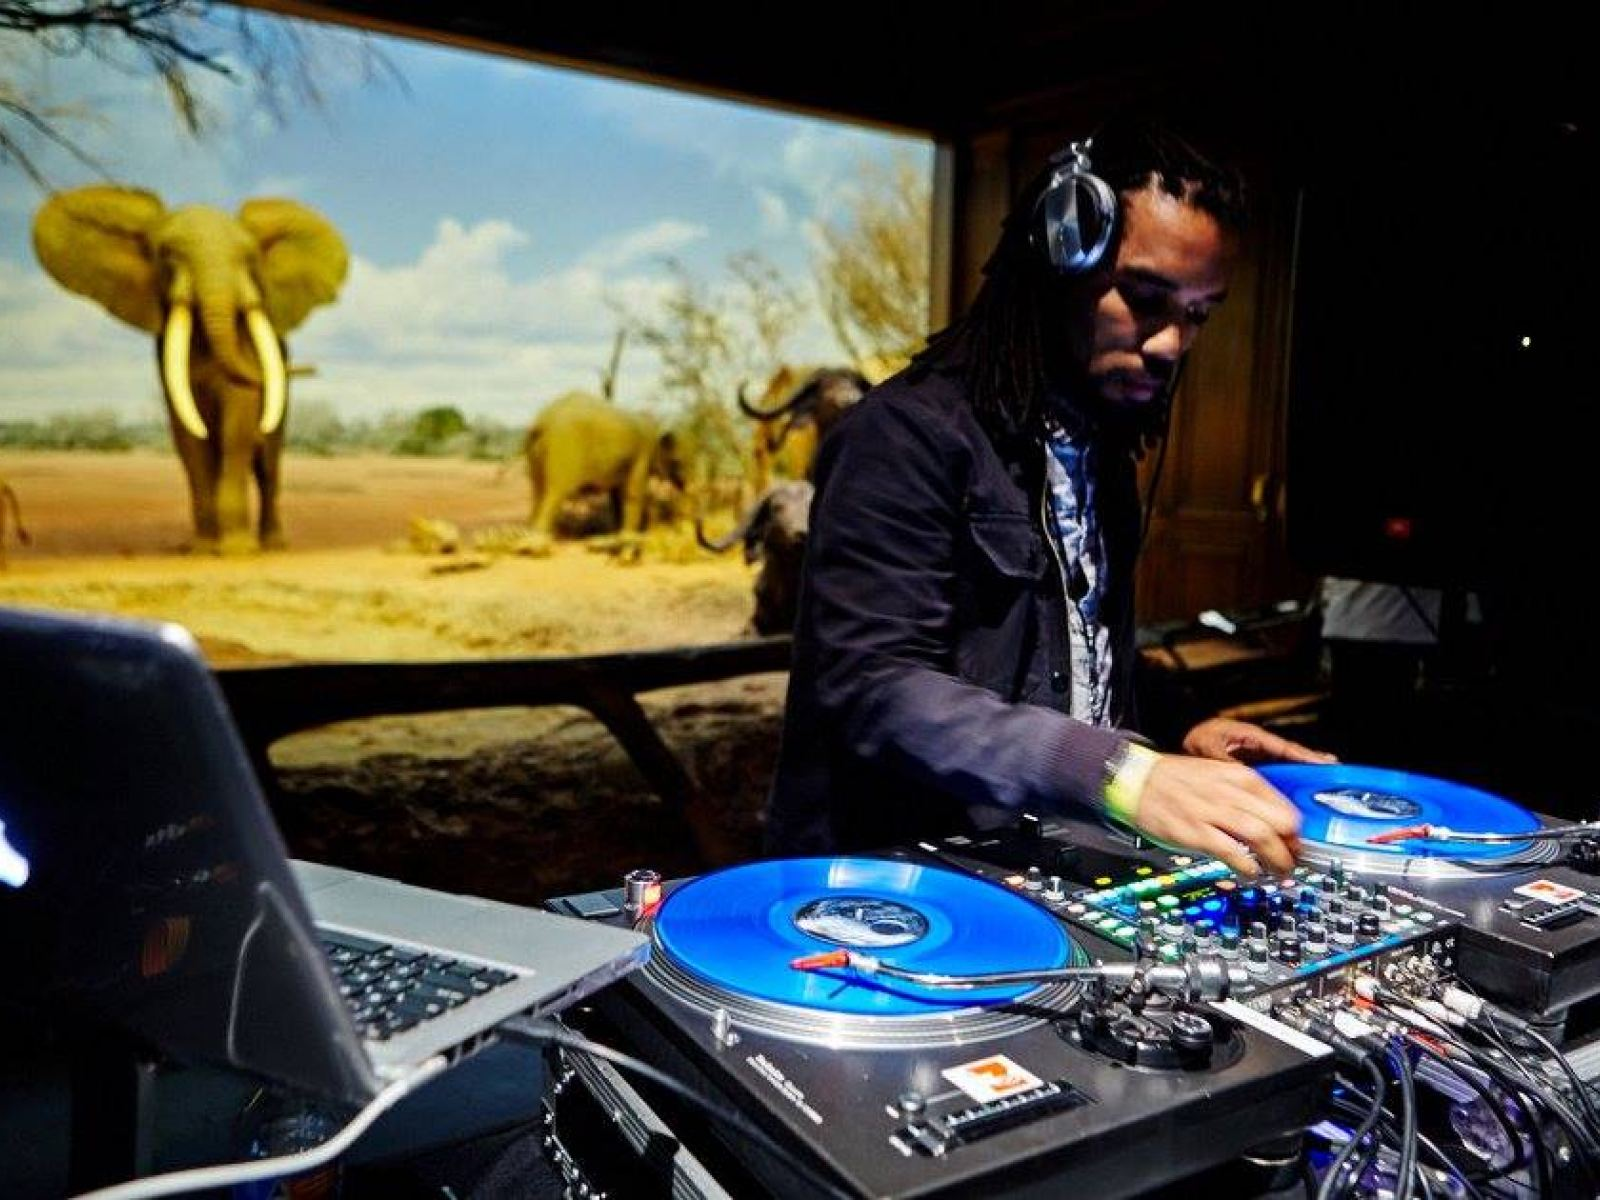 DJ Jedi on the decks in the African Mammal Hall at First Fridays | Photo: Natural History Museum, Facebook